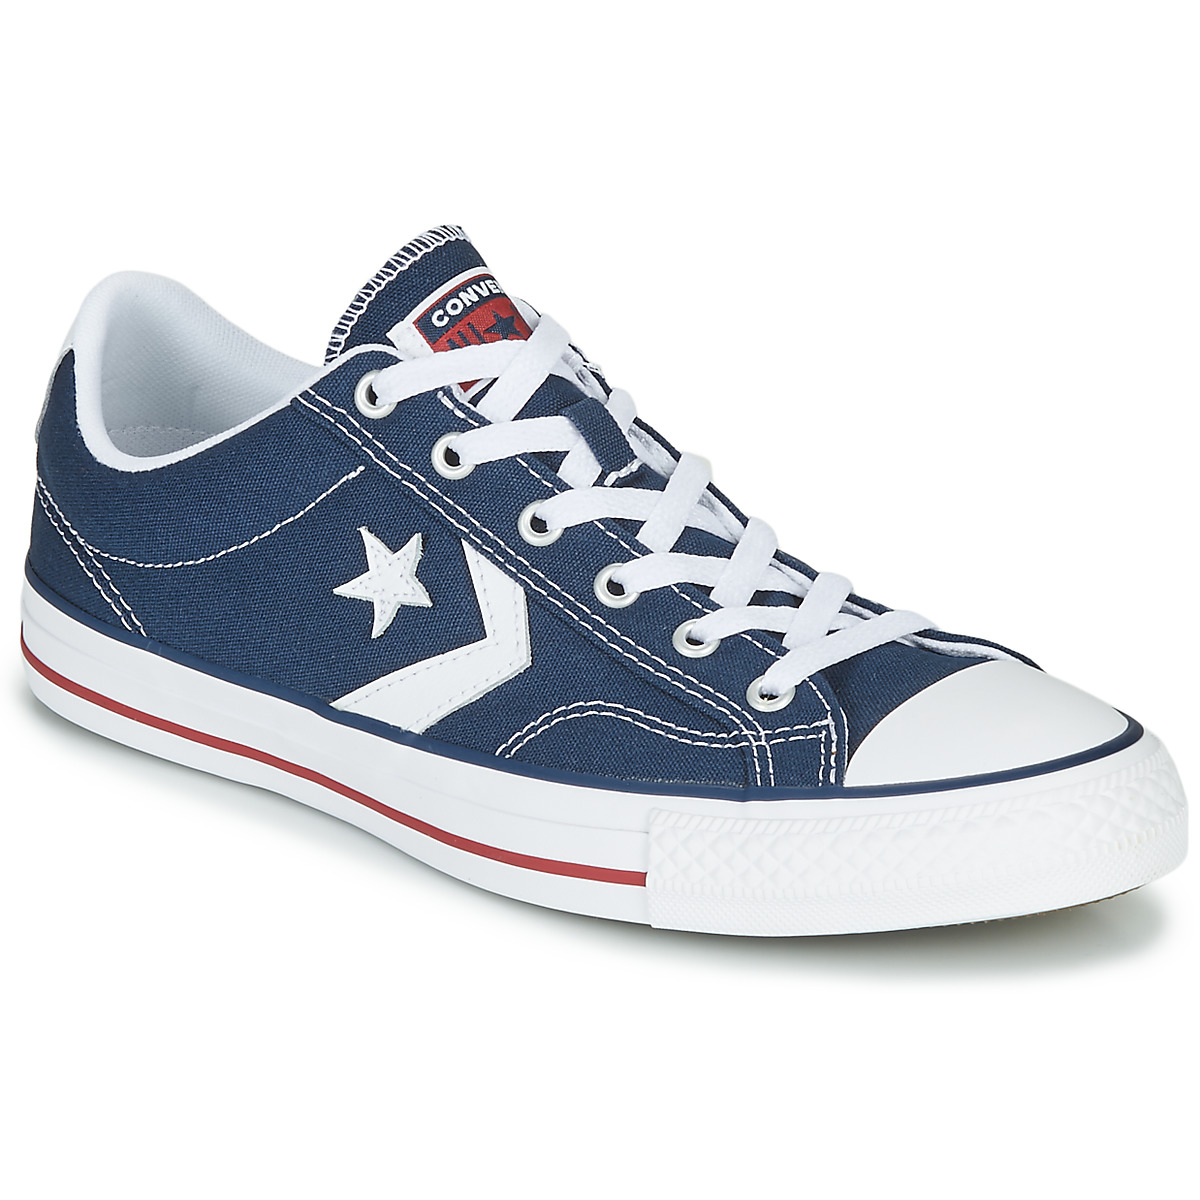 best loved 624bf 669a2 Chaussures Baskets basses Converse STAR PLAYER OX Marine   Blanc